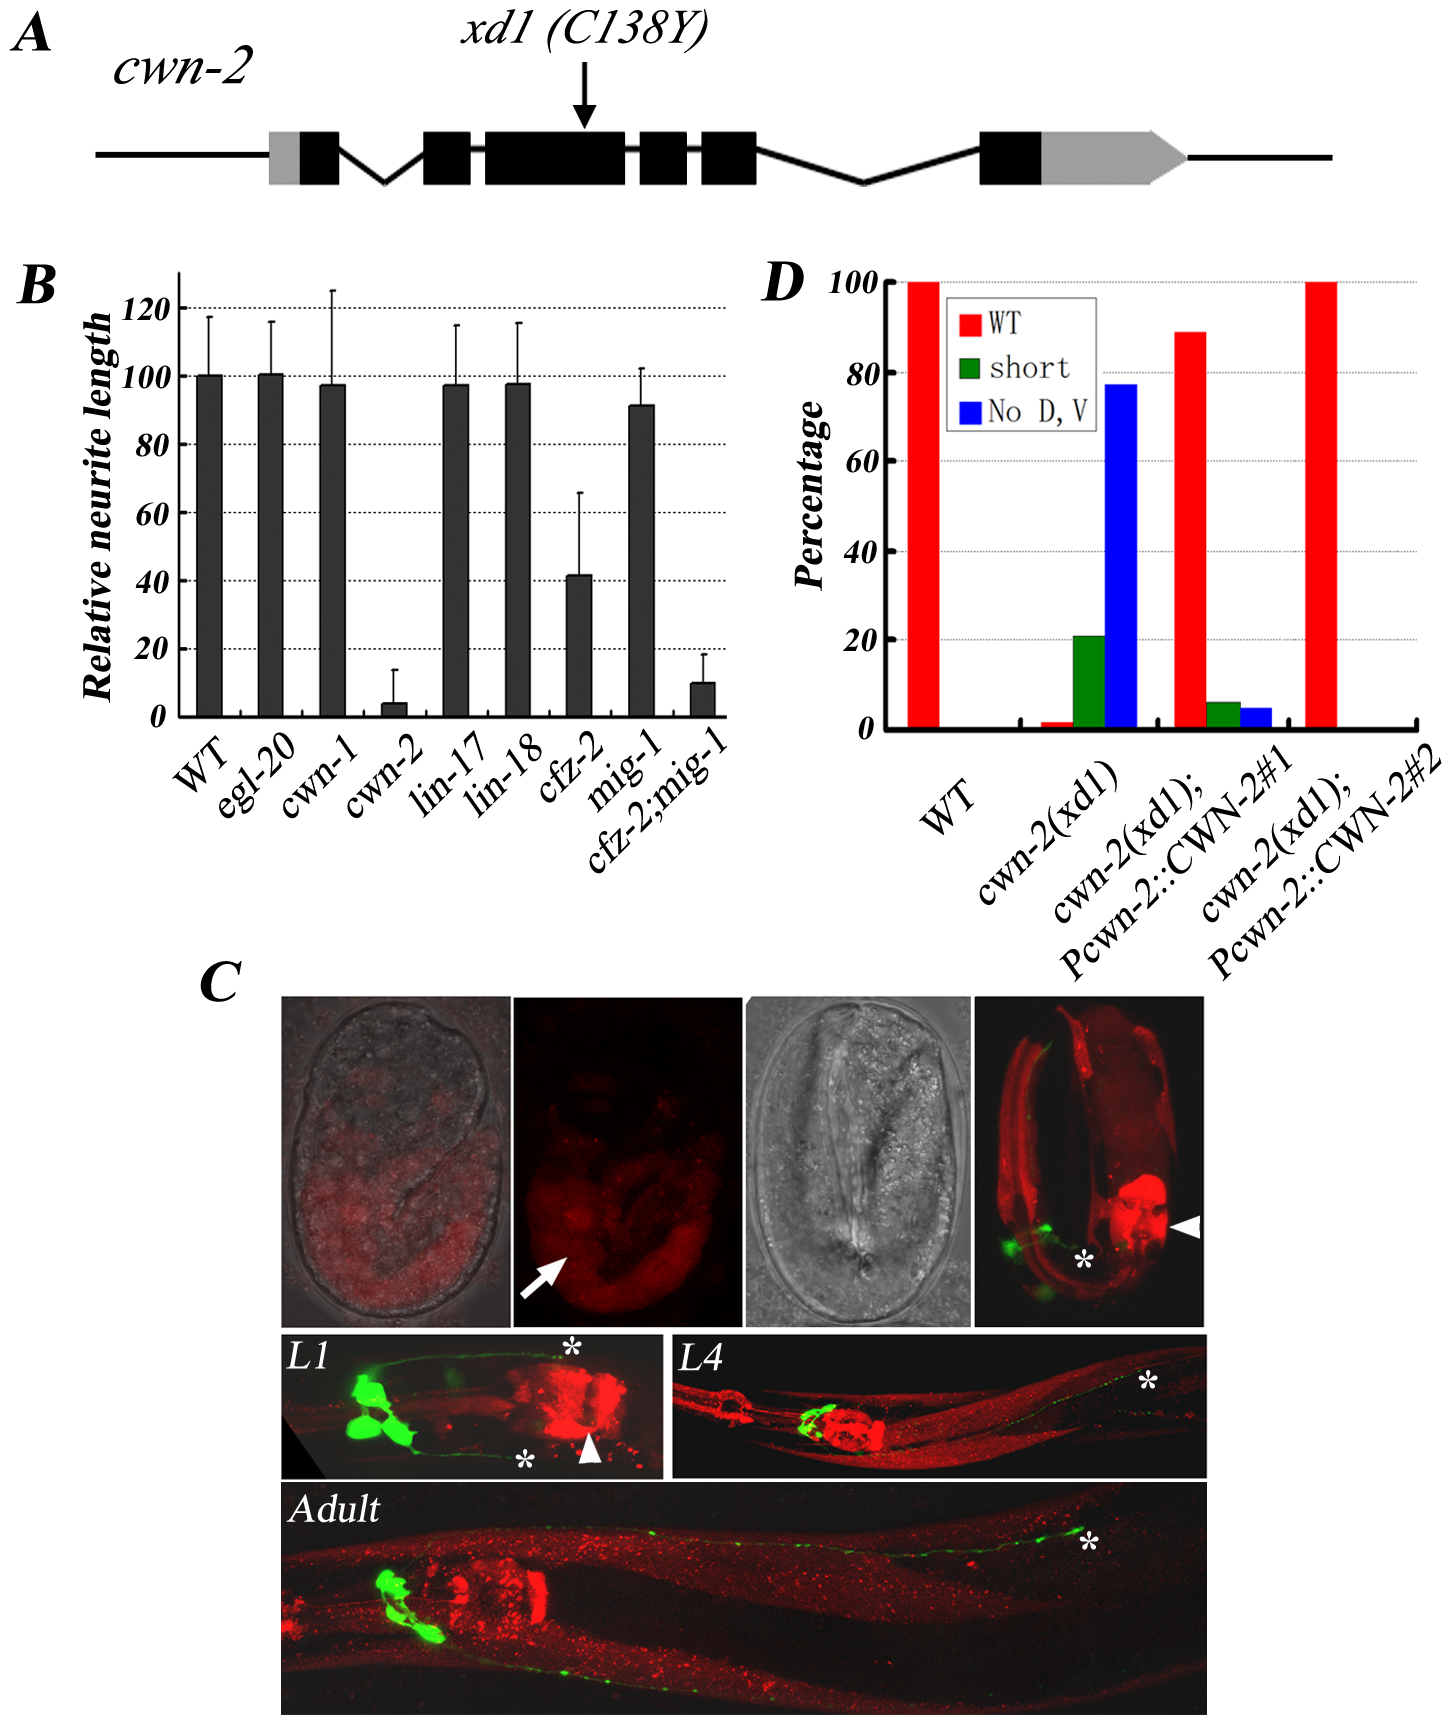 <i>cwn-2</i> regulates RMED/V neurite A/P outgrowth.